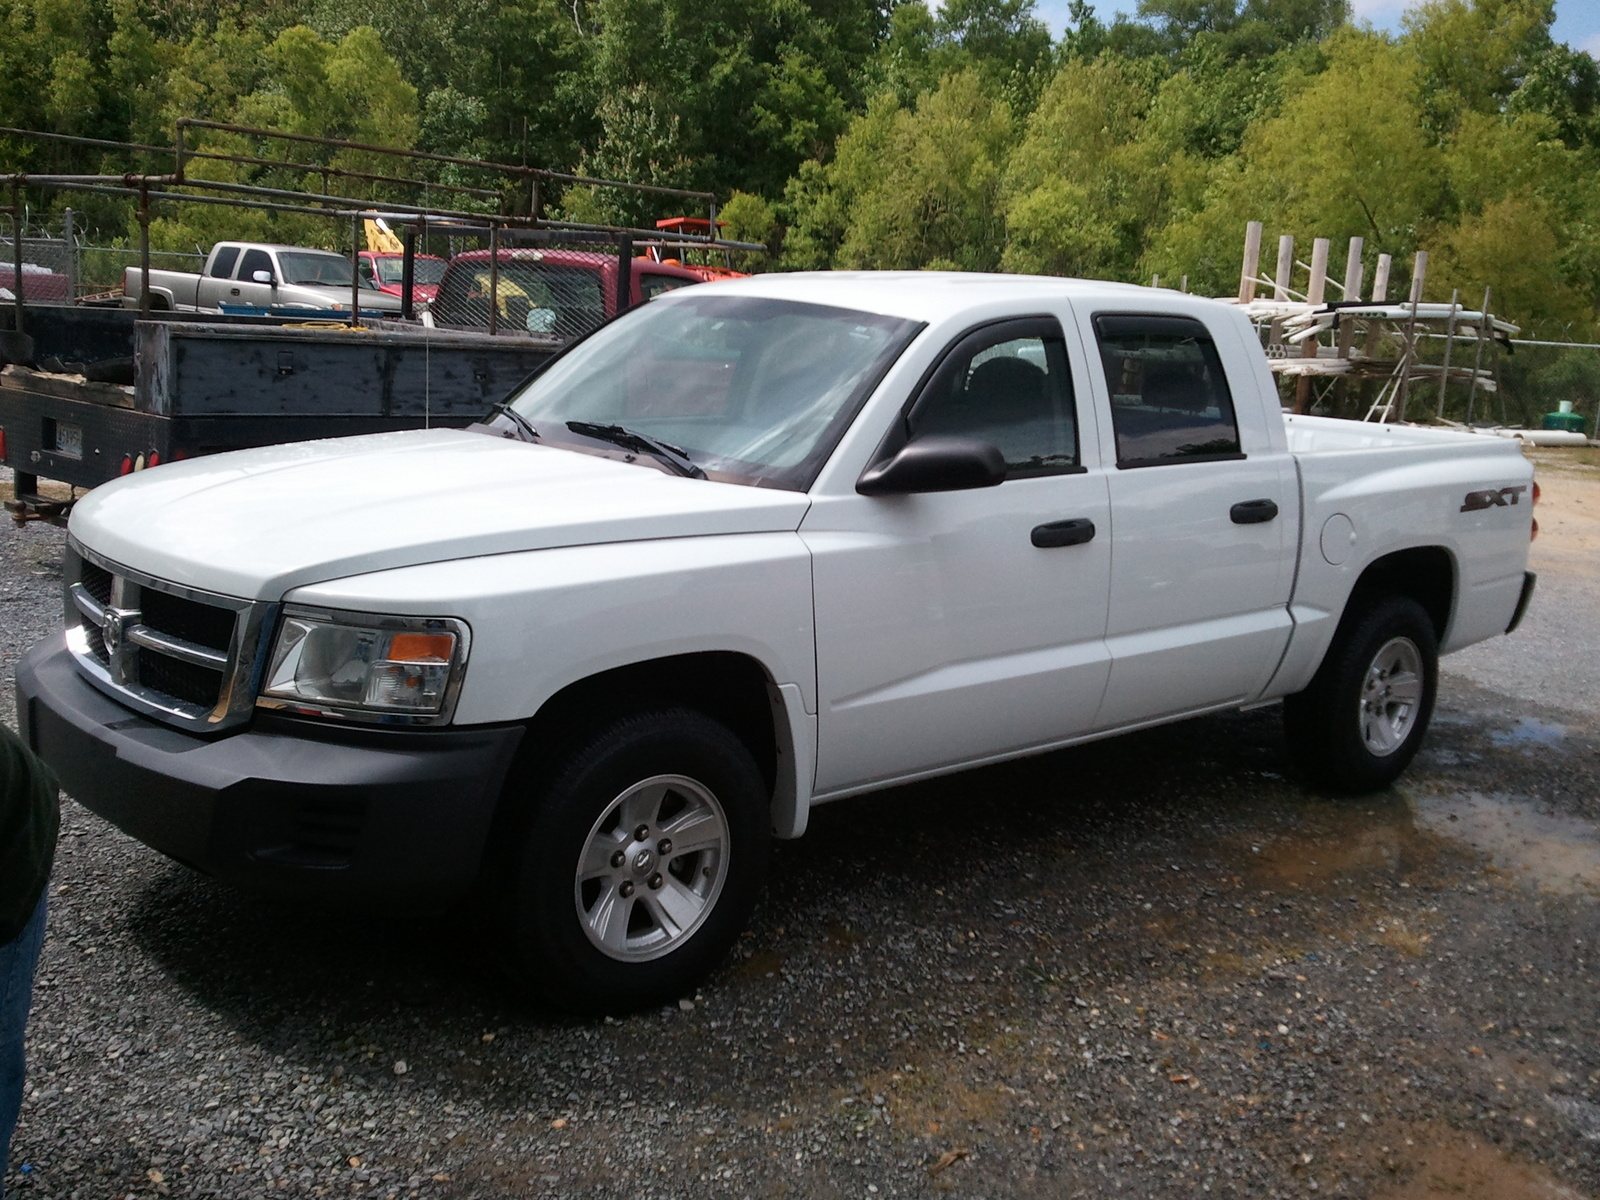 Dodge Dakota Questions - What modifications would I need to do to fit a 8.4L Dodge Viper engine ...